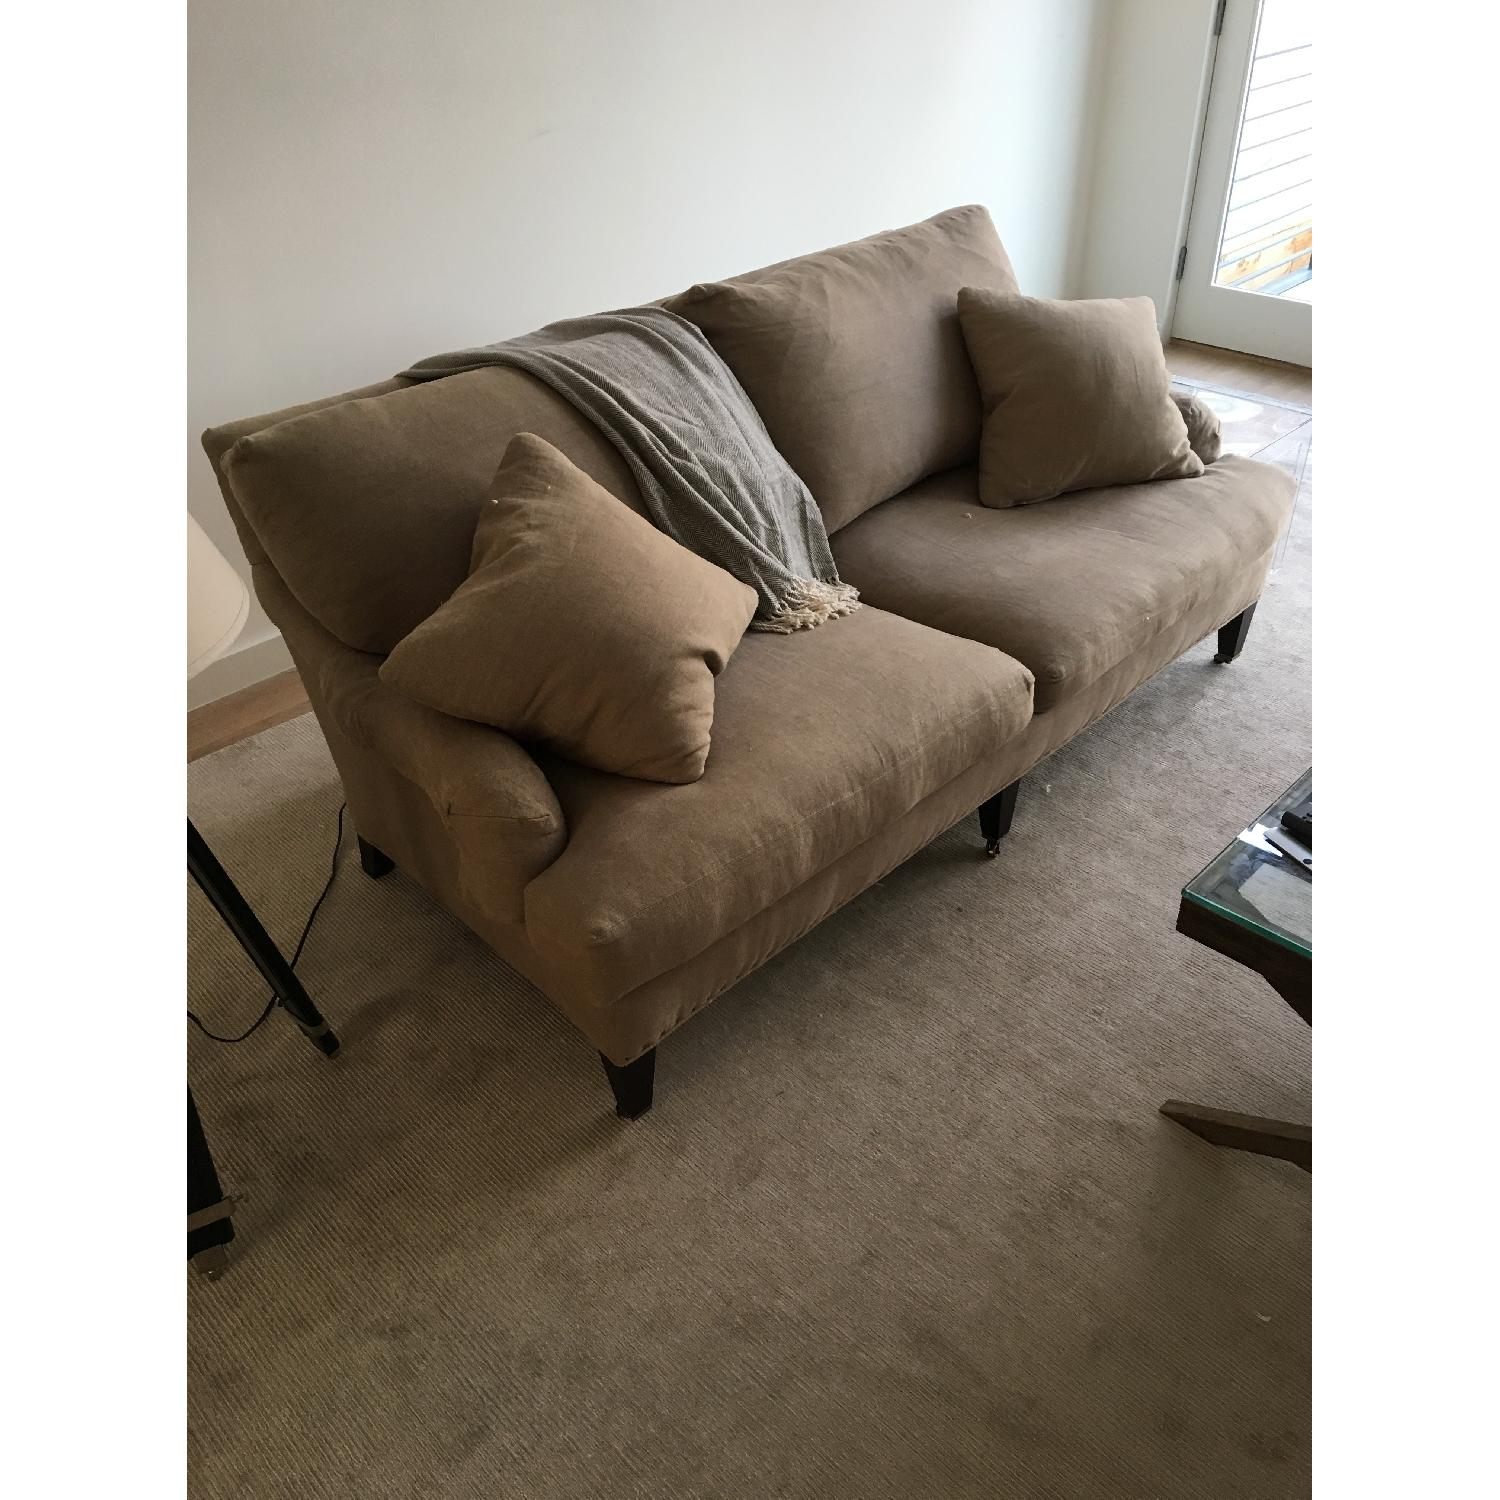 lee industries linen apartment sofa lee industries linen apartment sofa0 - Lee Industries Sofa